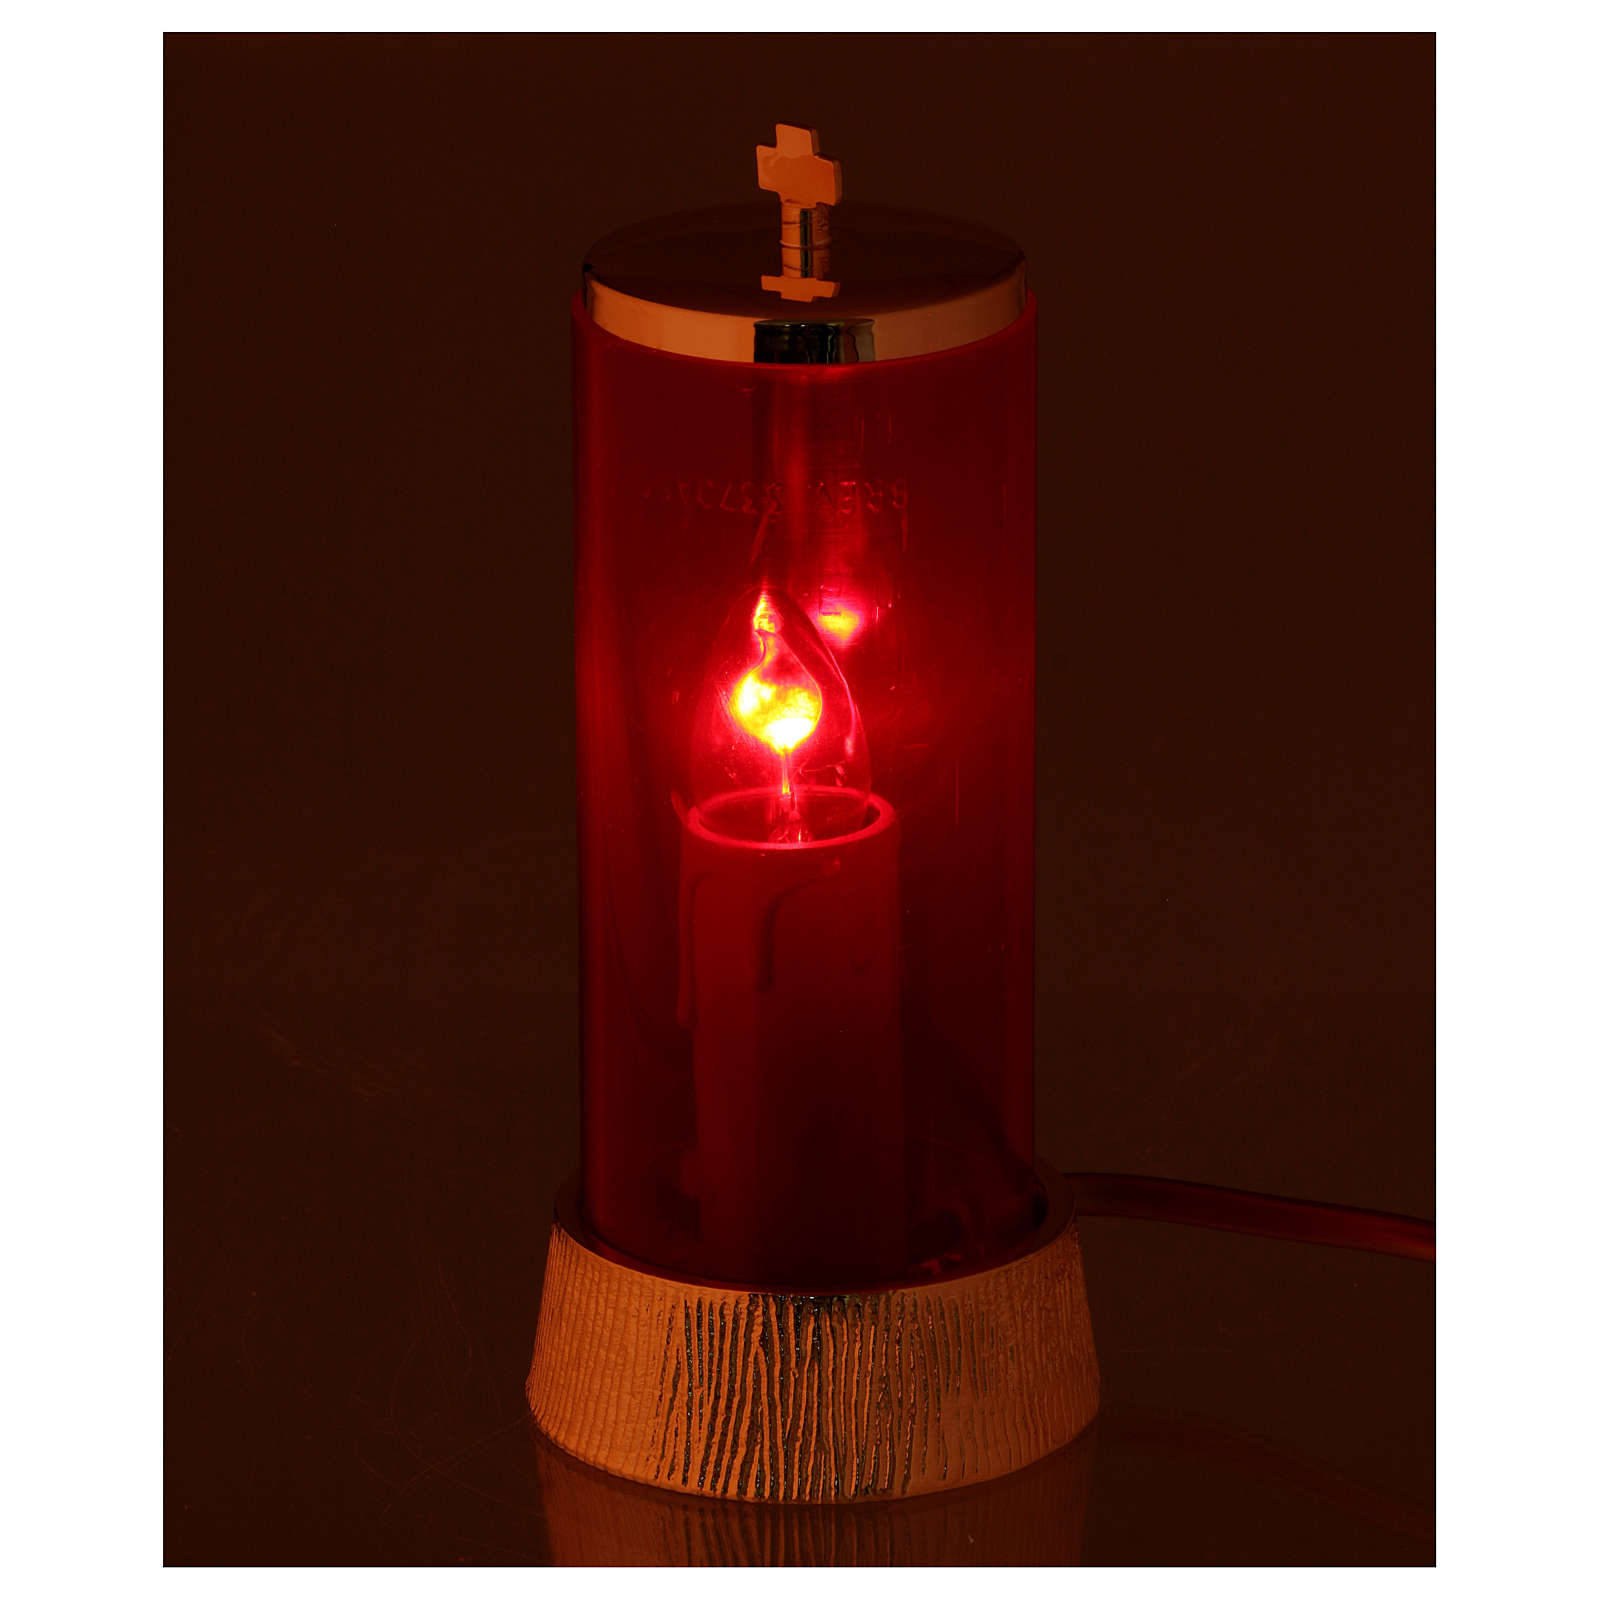 Vigil light electric lamp 220V 3